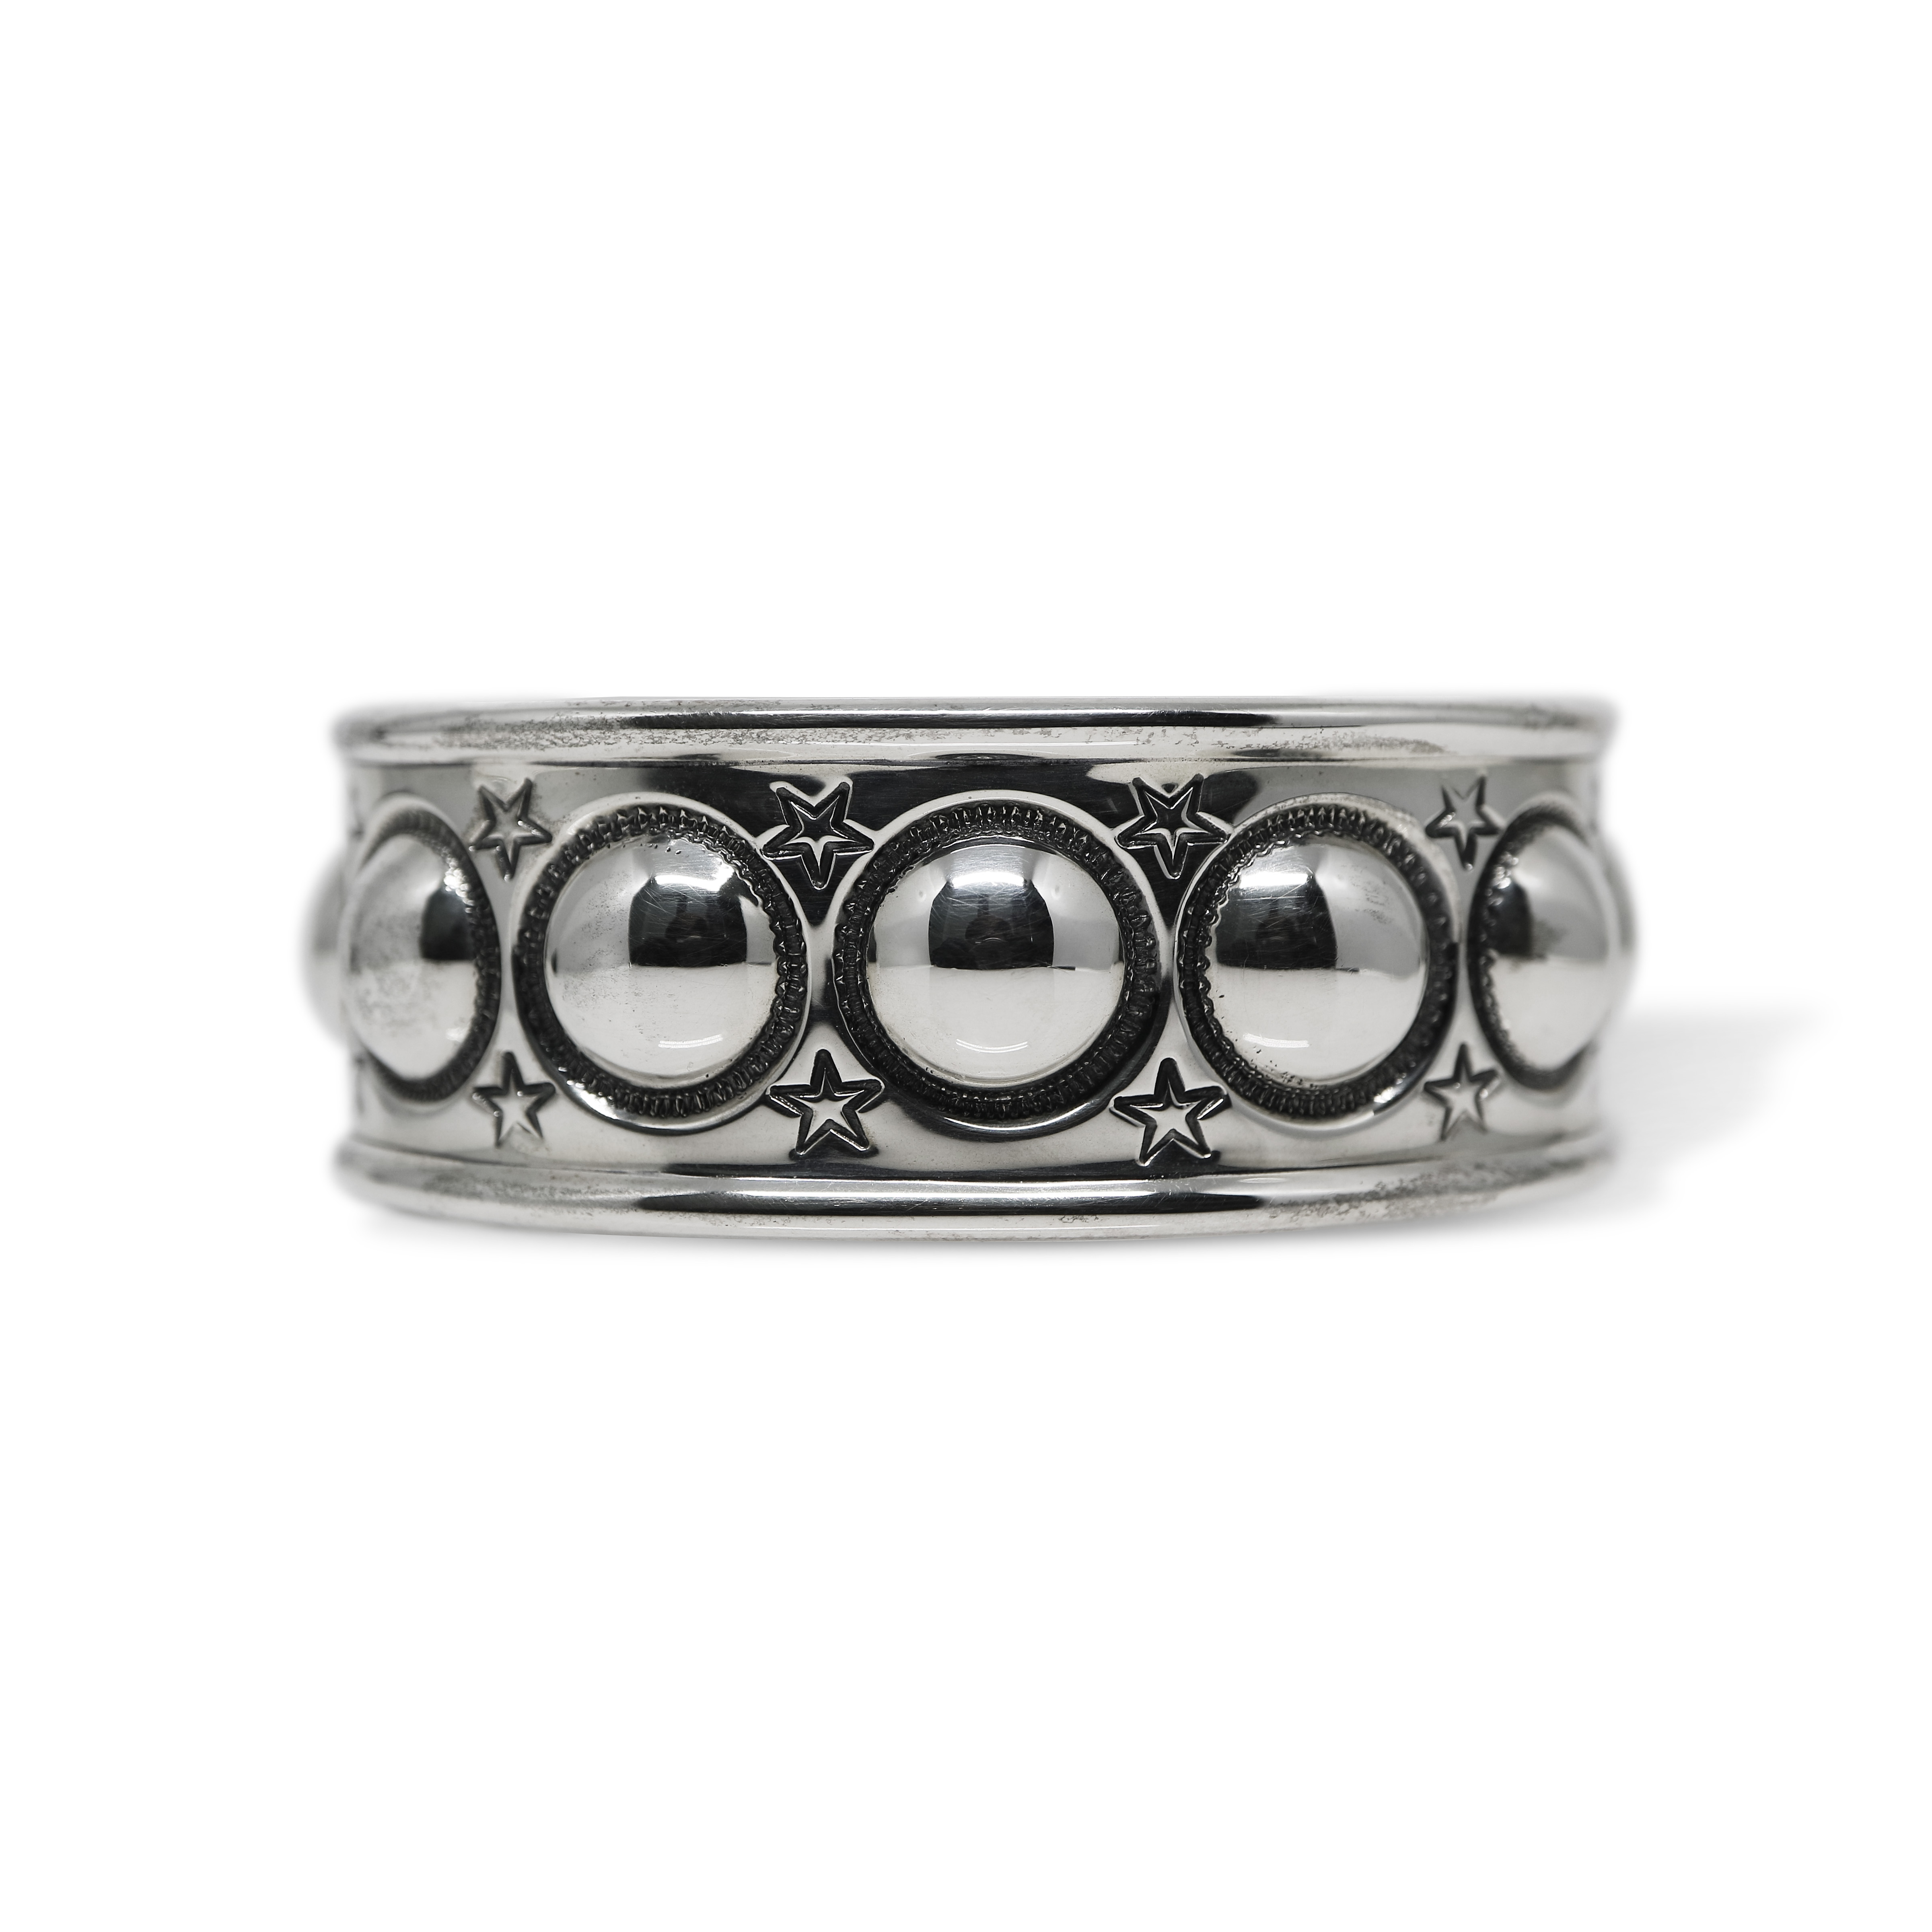 1 INCH 9 SMALL MOON WITH STARS CUFF [USD $2450]